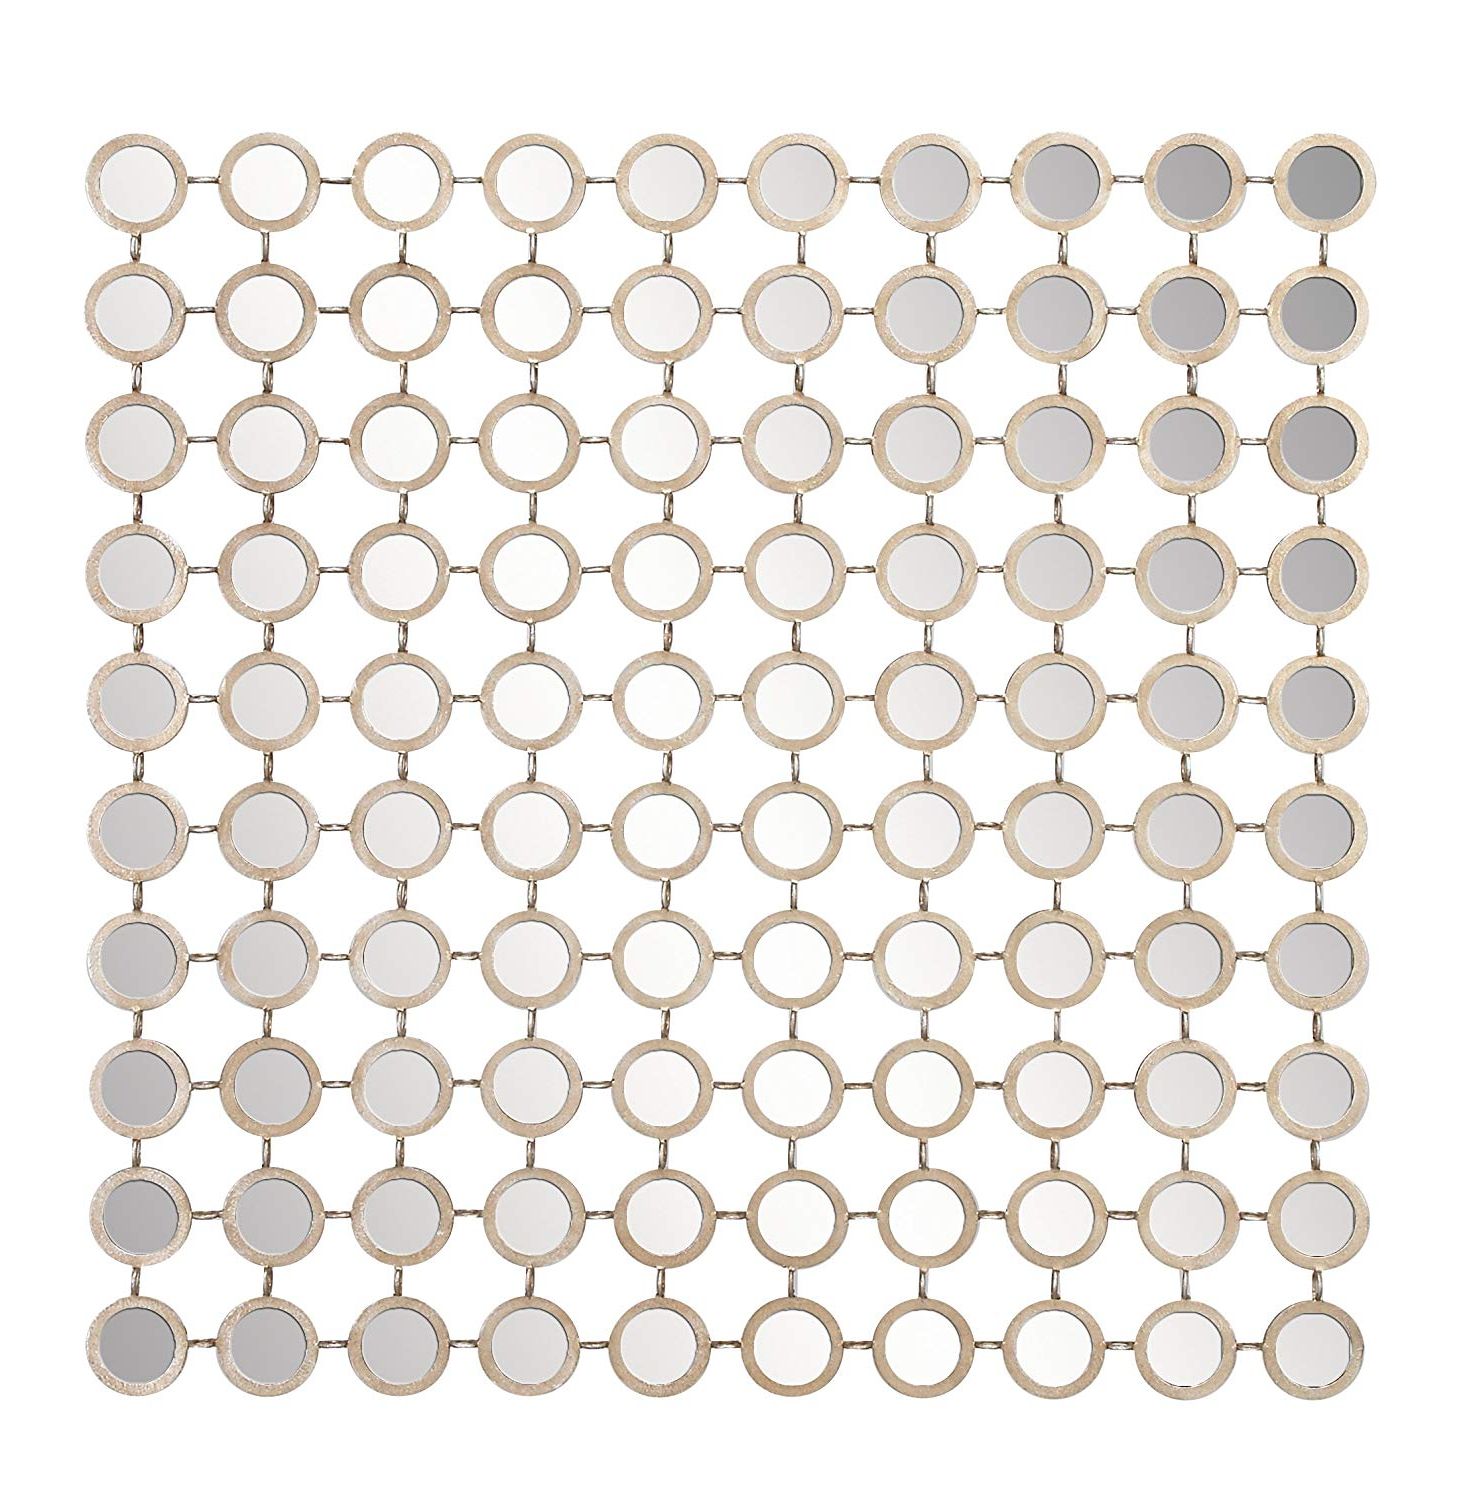 Grid Accent Mirrors For Recent Deco 79 64109 Modern Style Large Square Wall Mirror With Round Gold Metal  Mirror Grid, Gold Mirror Wall Decor, Contemporary Wall Mirror, Accent Decor (Gallery 5 of 20)